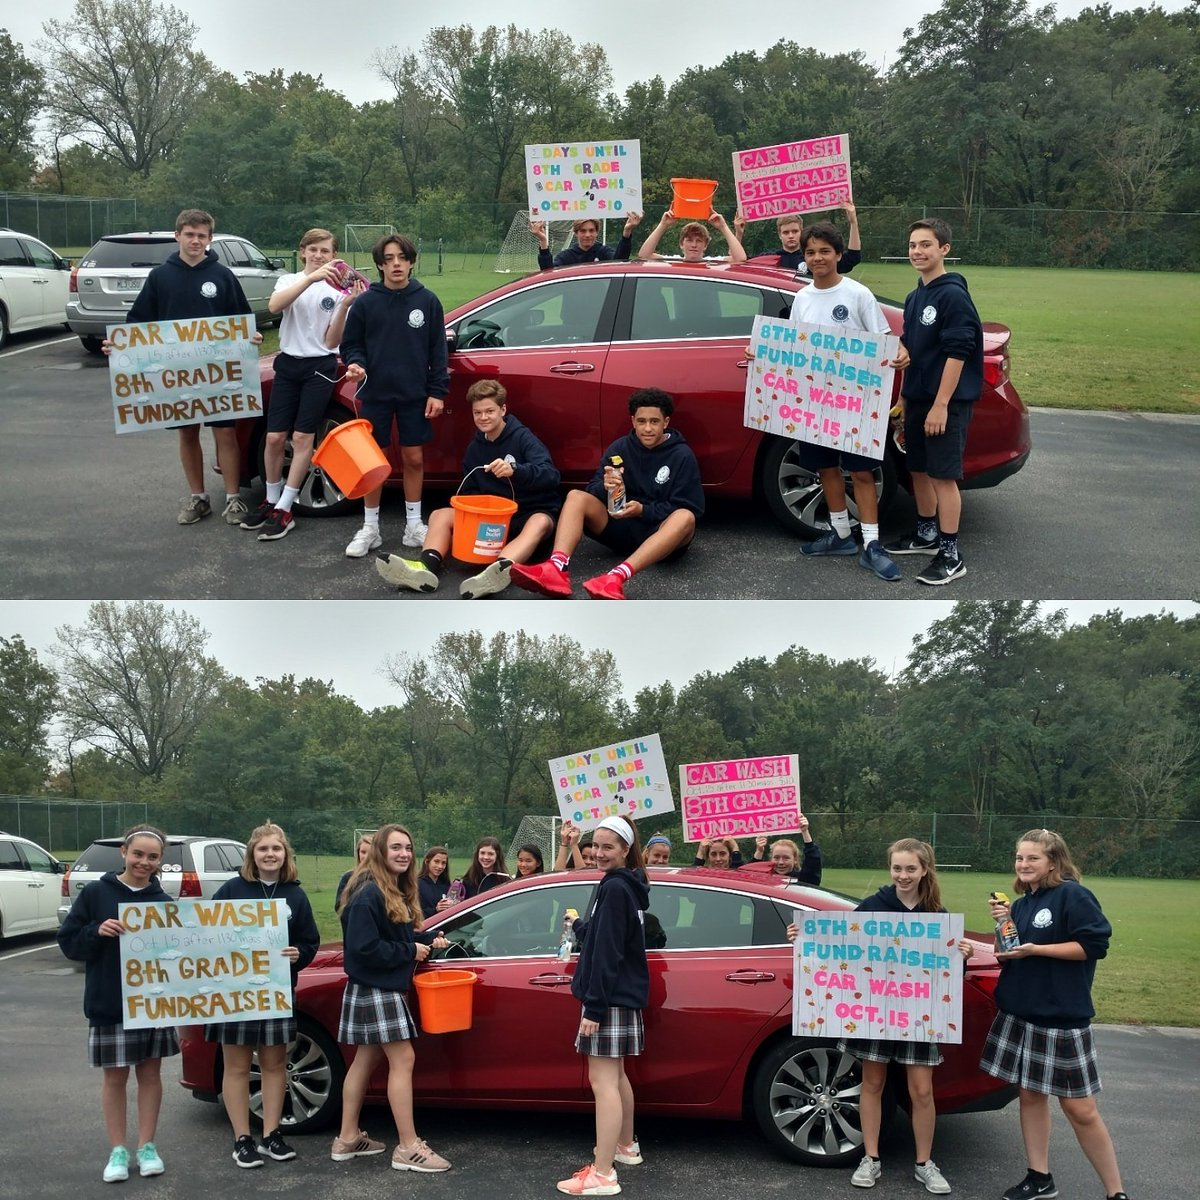 Immacolata School On Twitter 8th Grade Fundraiser Carwash Today